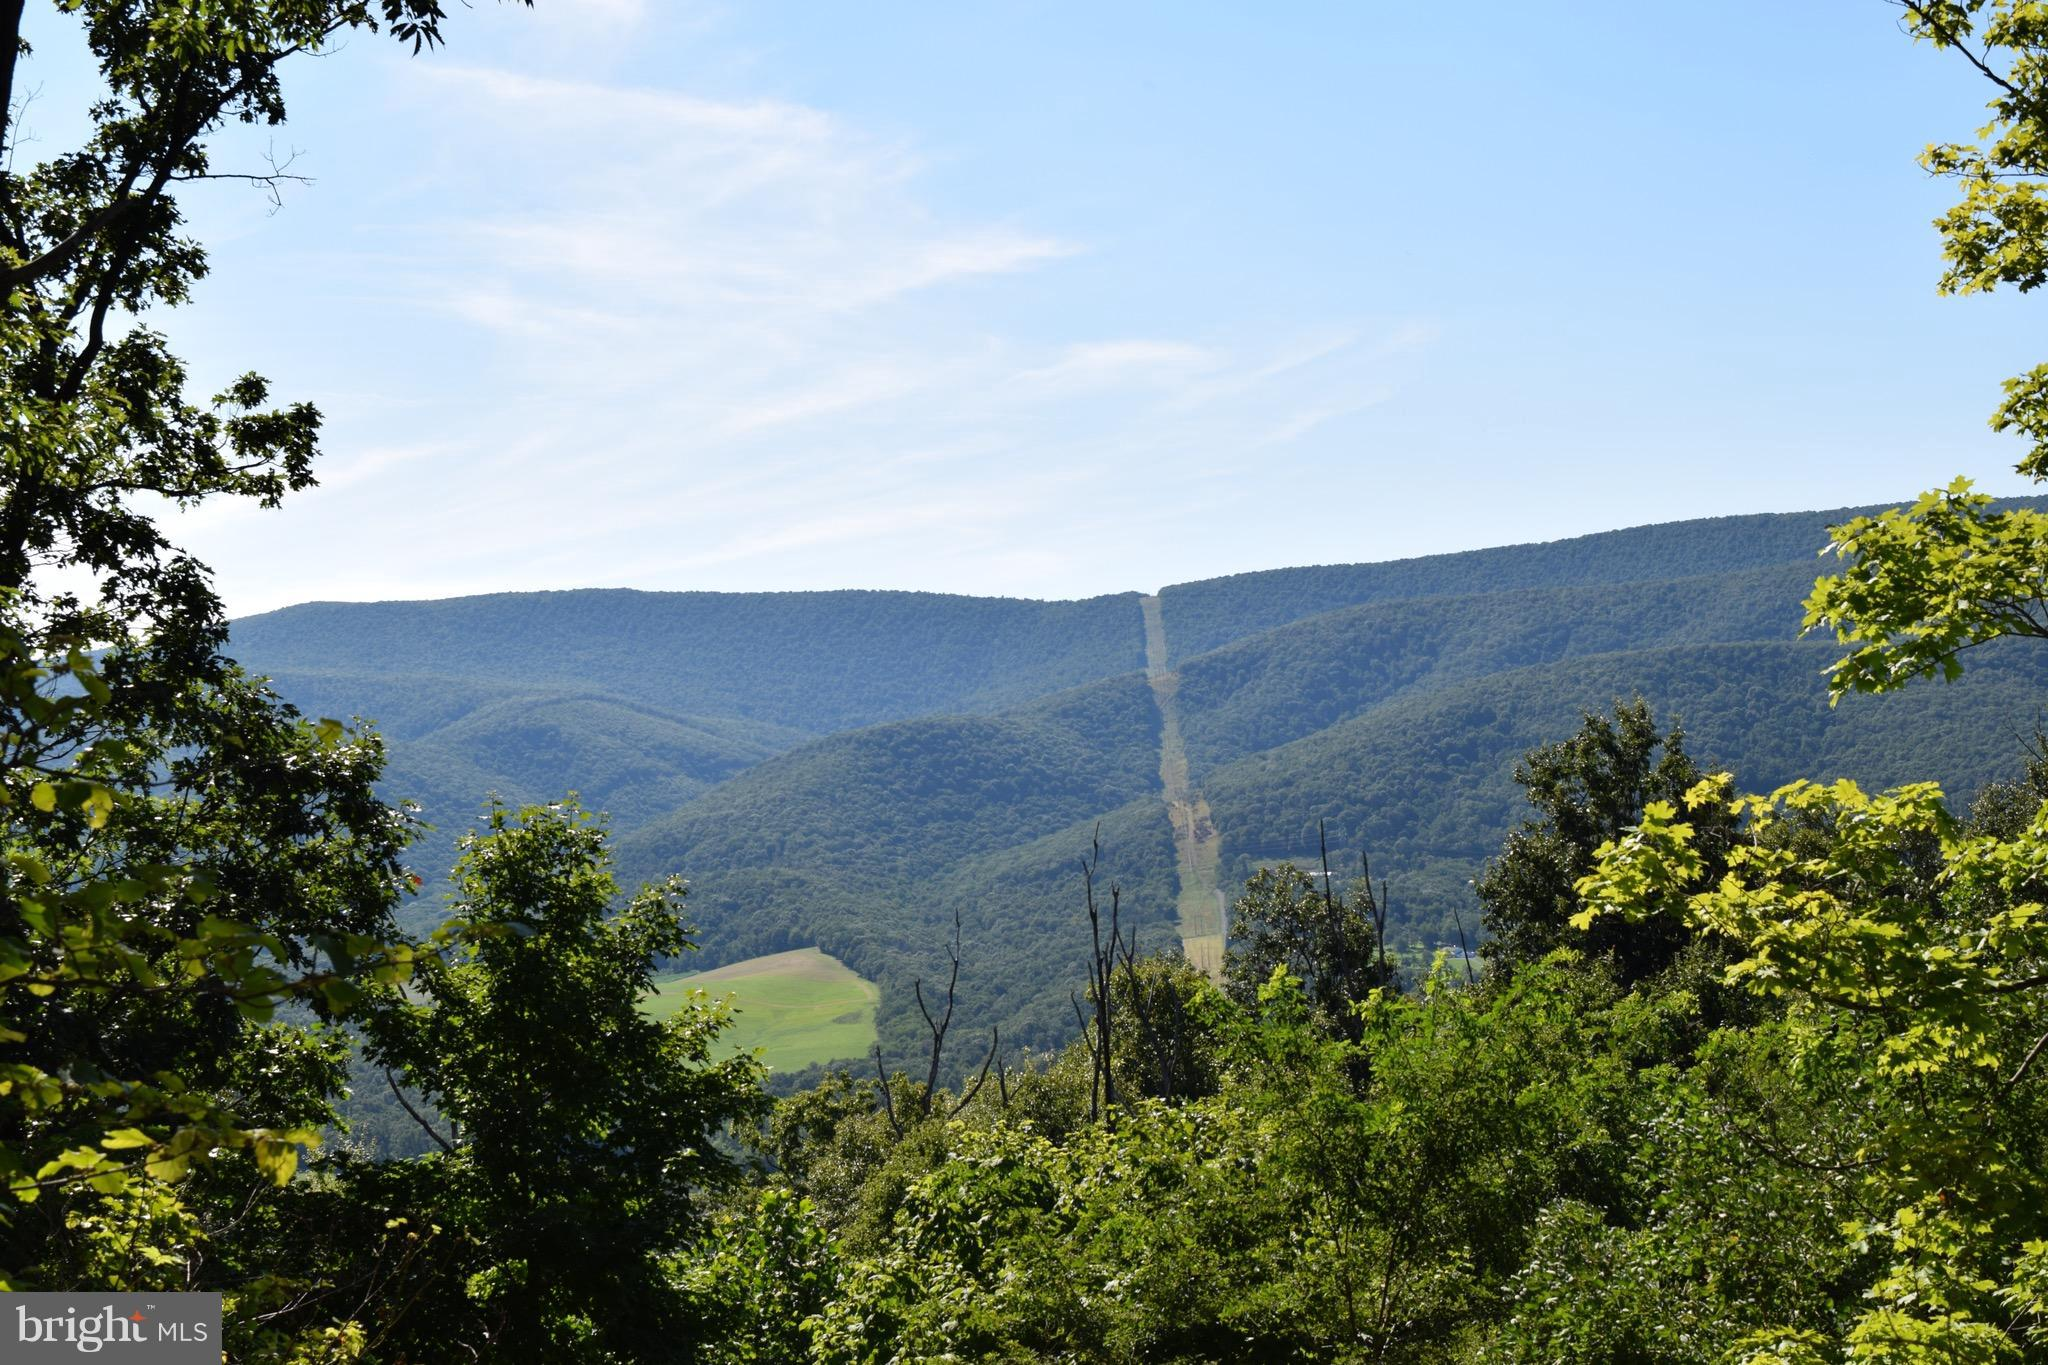 BEAR RIDGE ROAD, NEW CREEK, WV 26743